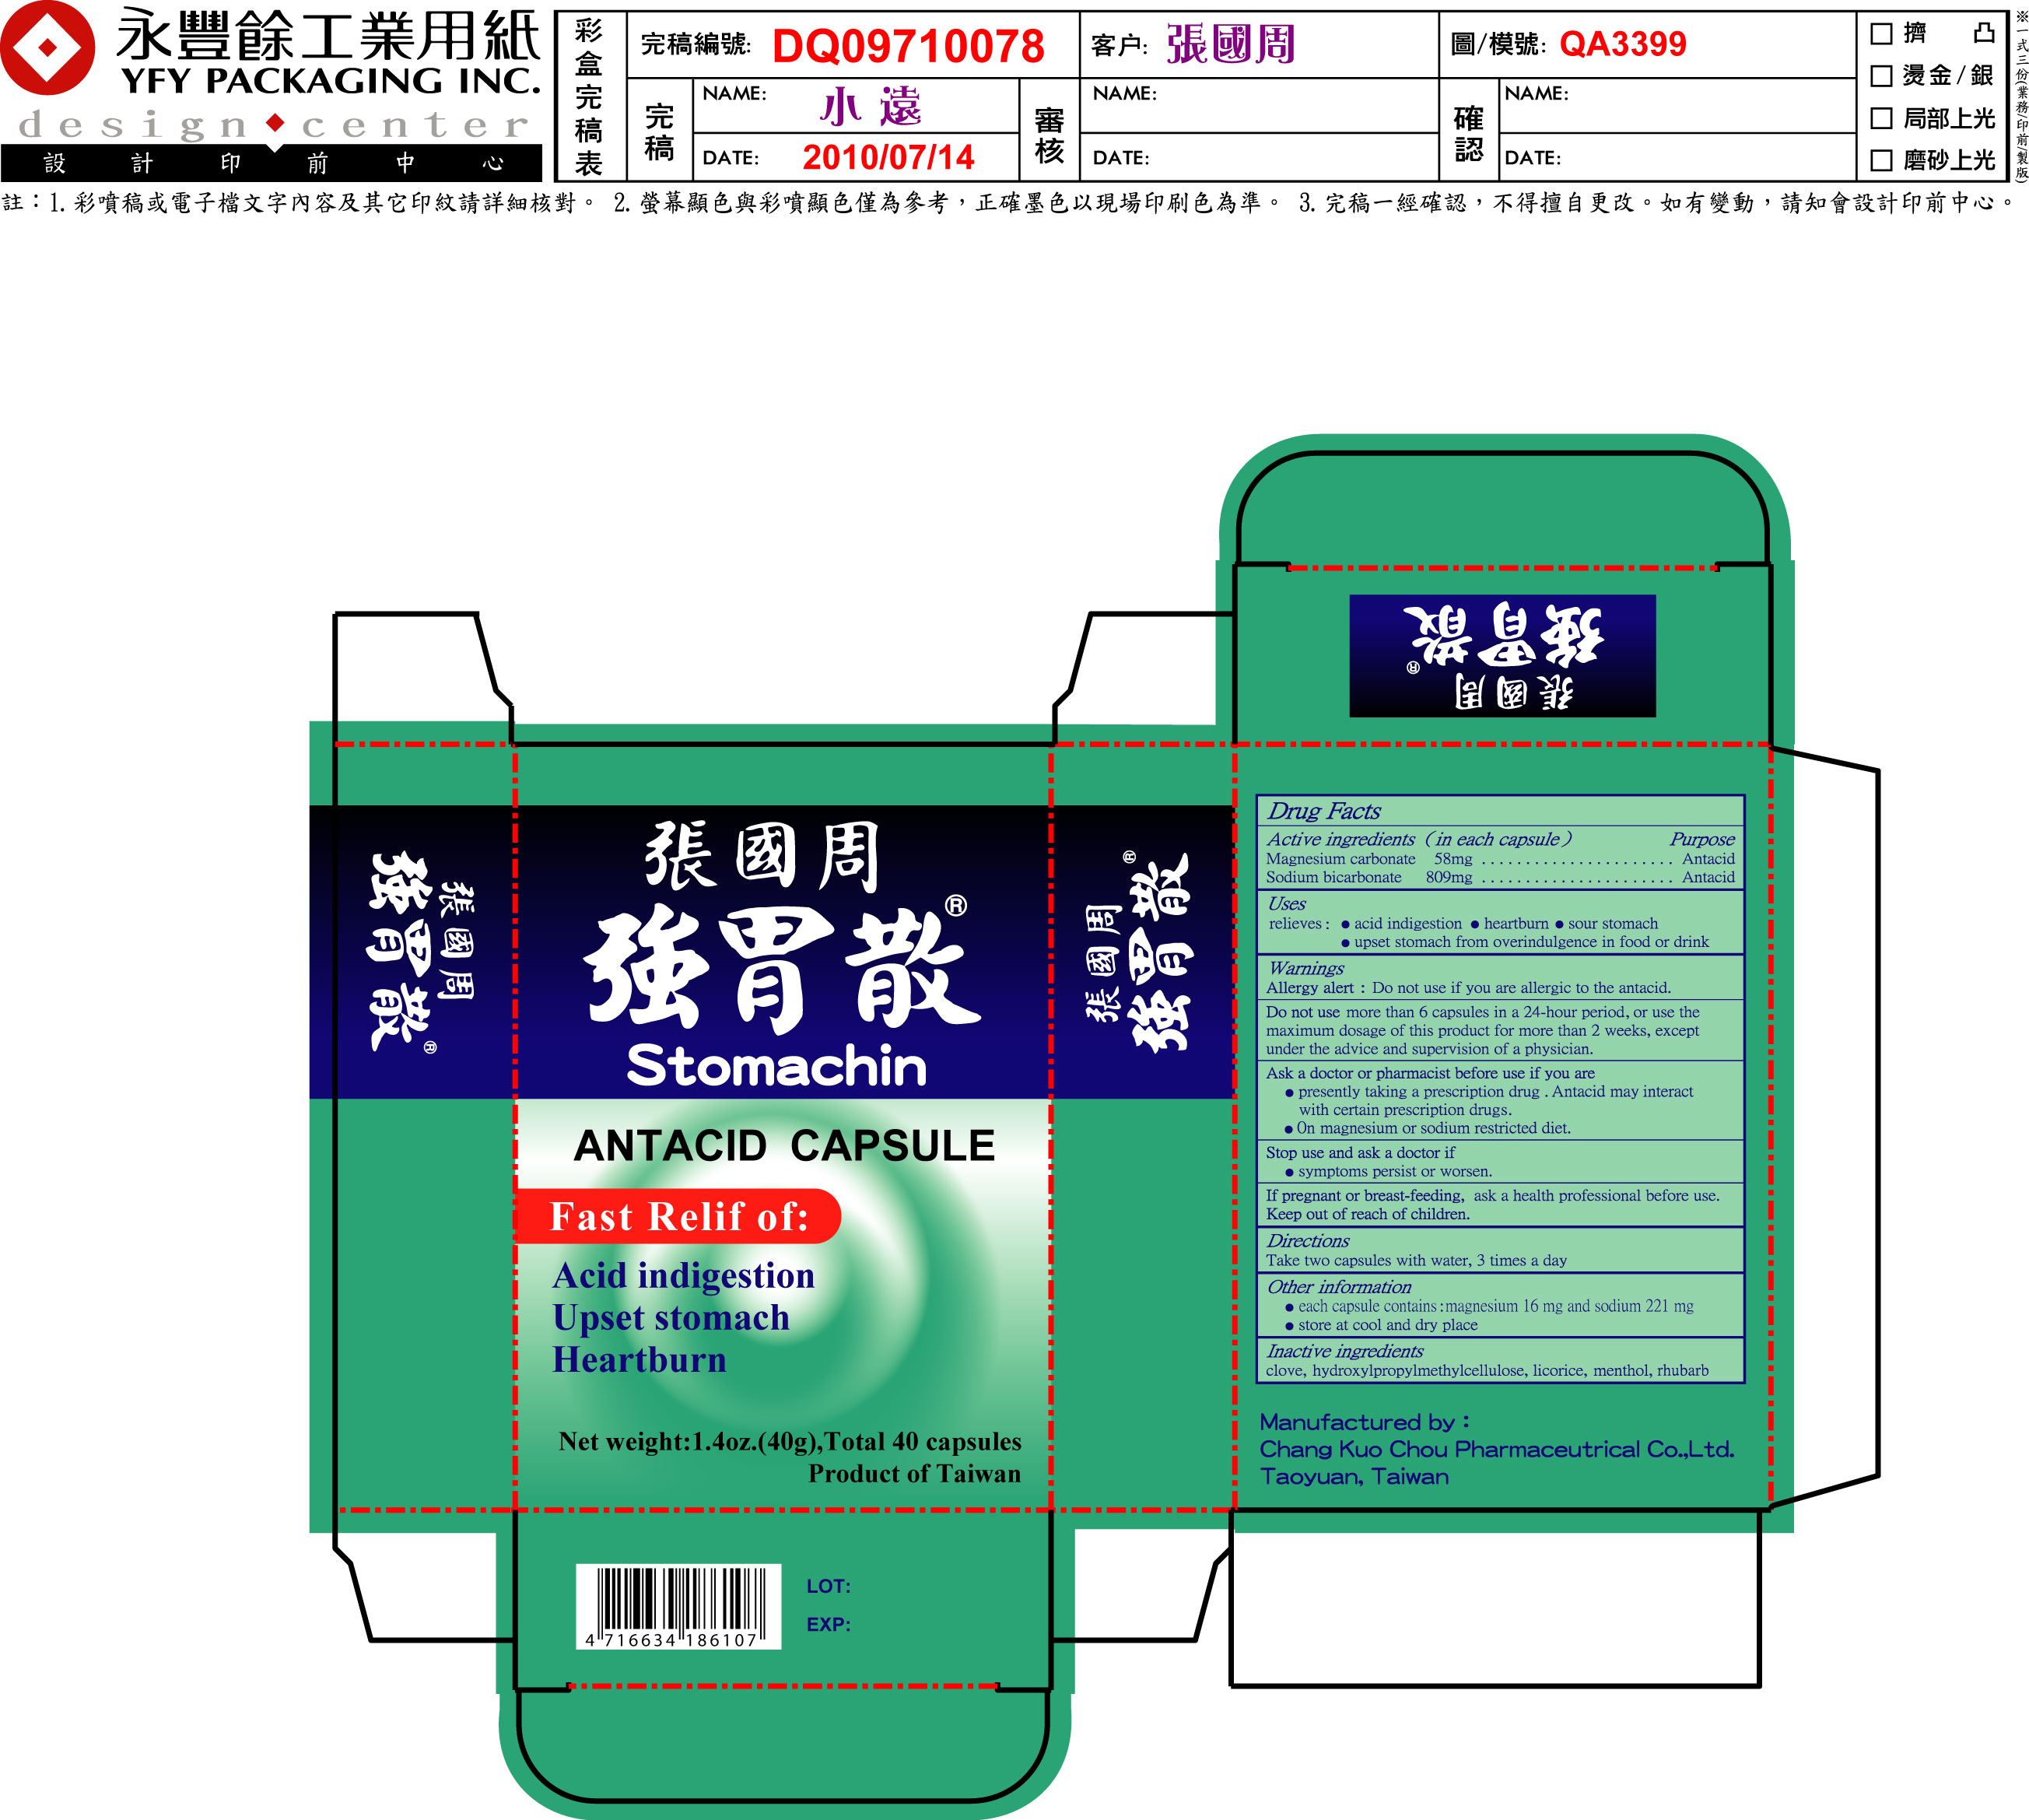 Stomachin Antacid (Magnesium Carbonate And Sodium Bicarbonate) Capsule [Chang Kuo Chou Pharmaceutical Co. Ltd.]